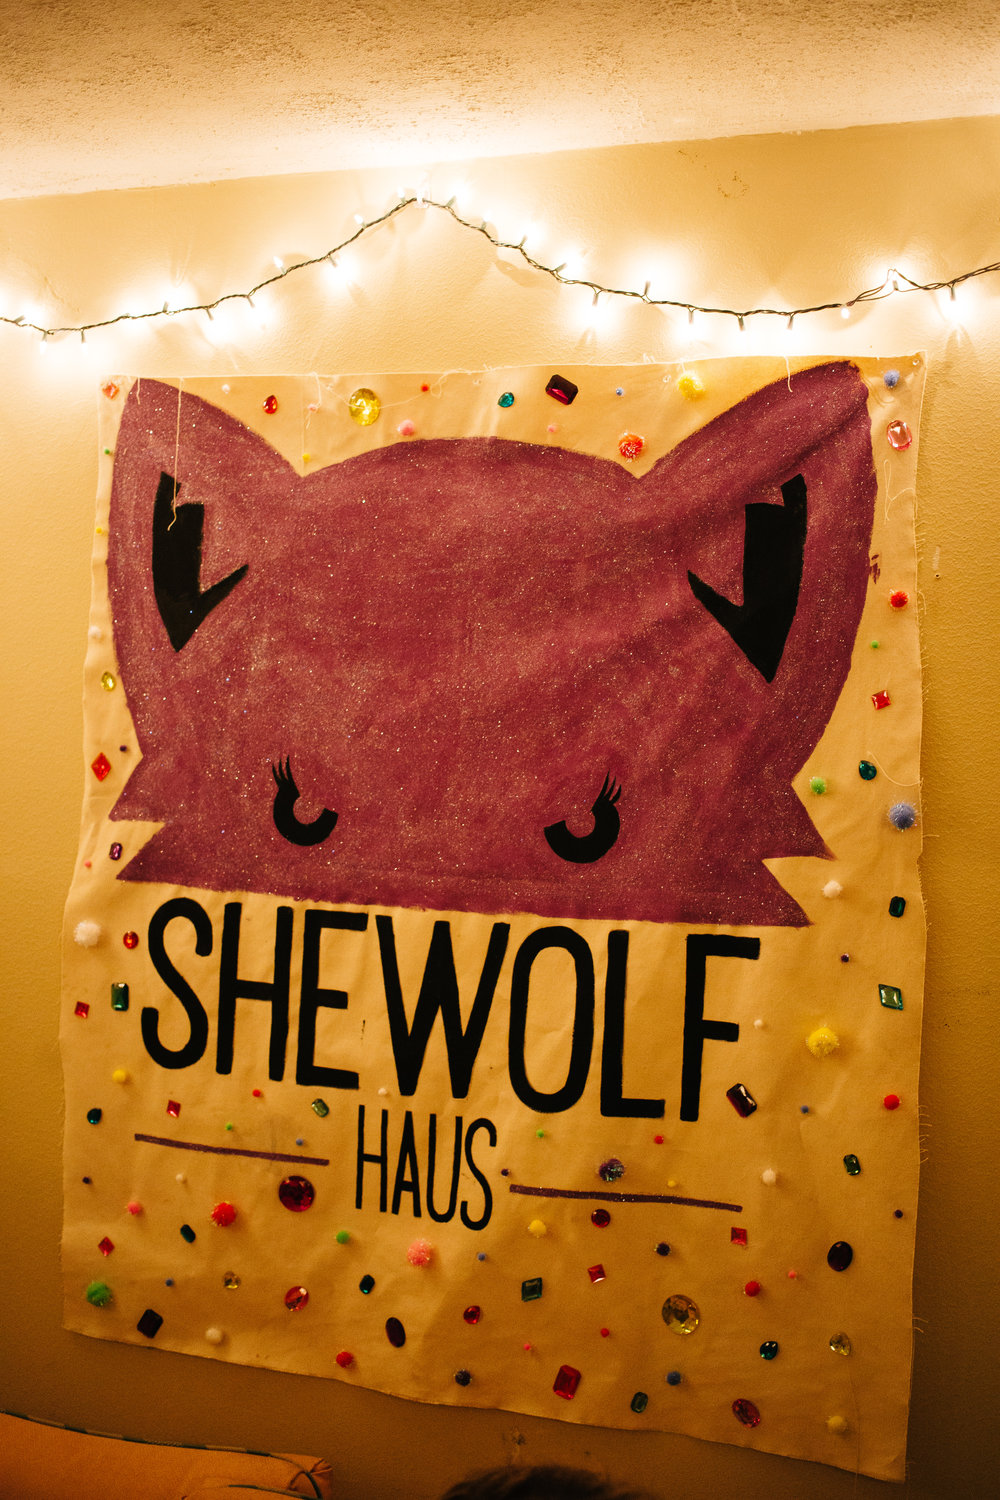 A banner hung in the living room of the Shewolf Haus.